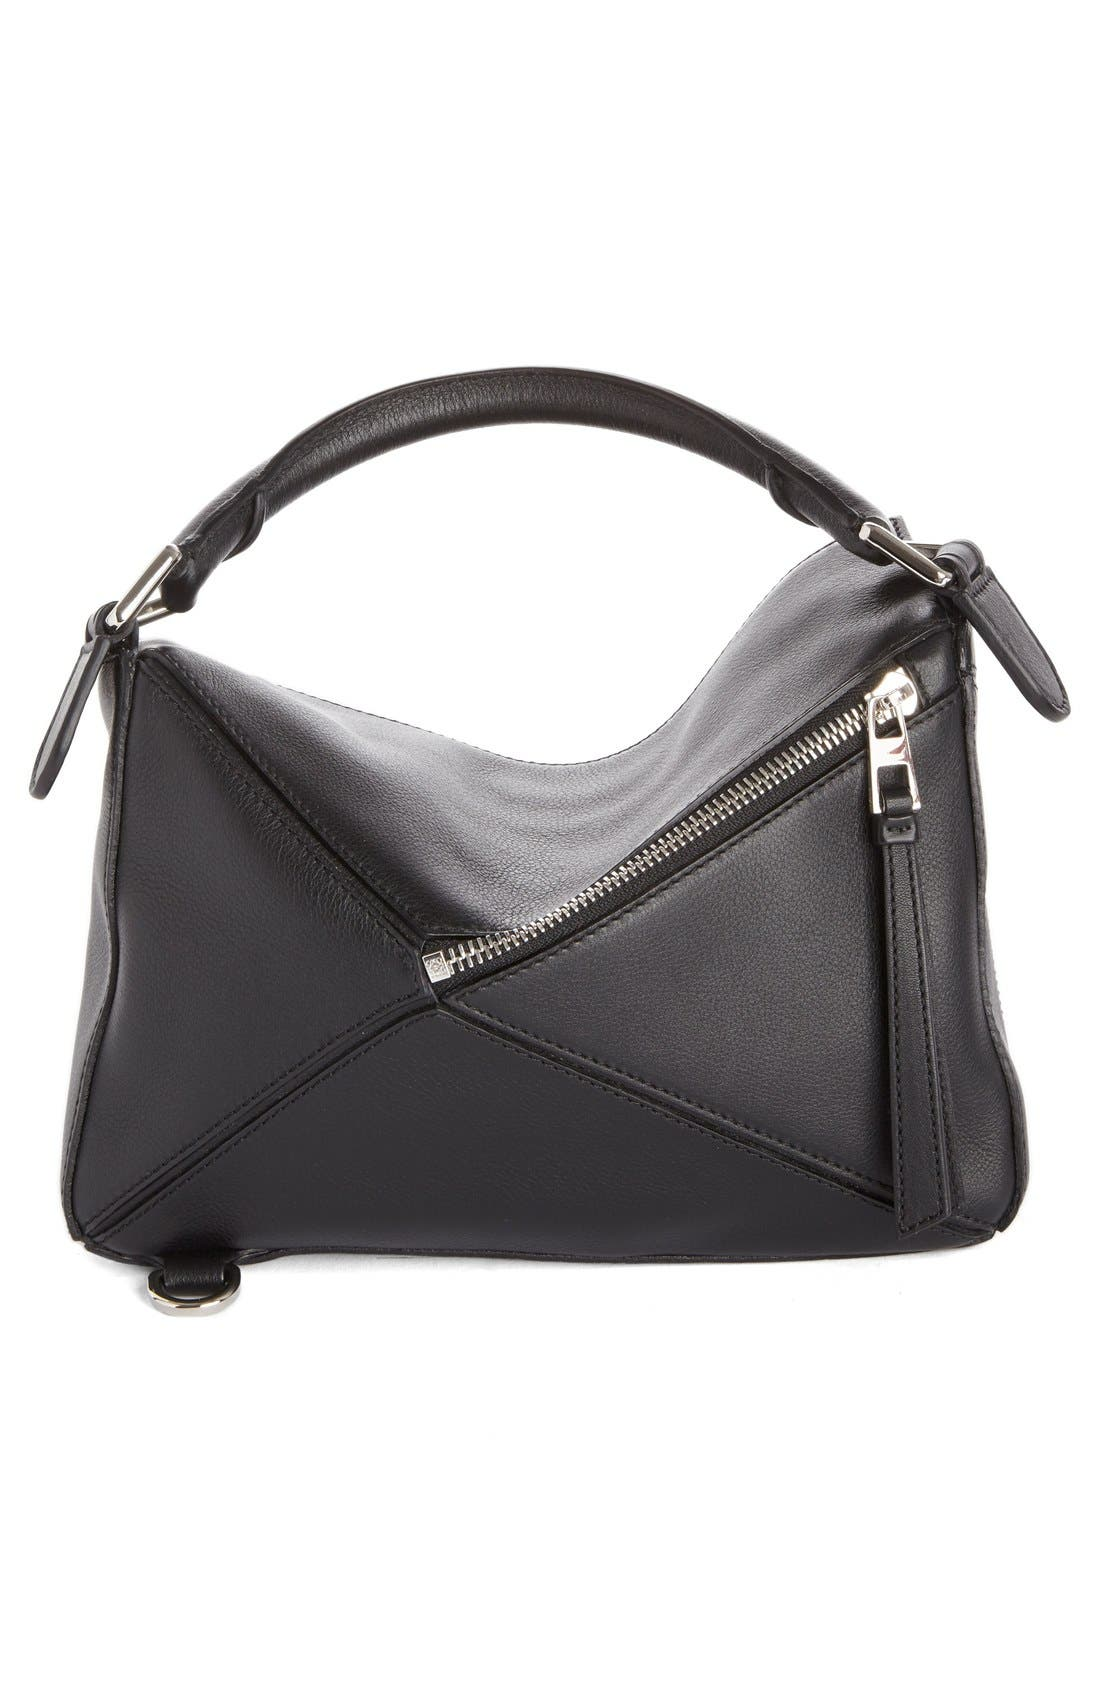 'Small Puzzle' Calfskin Leather Bag,                             Alternate thumbnail 11, color,